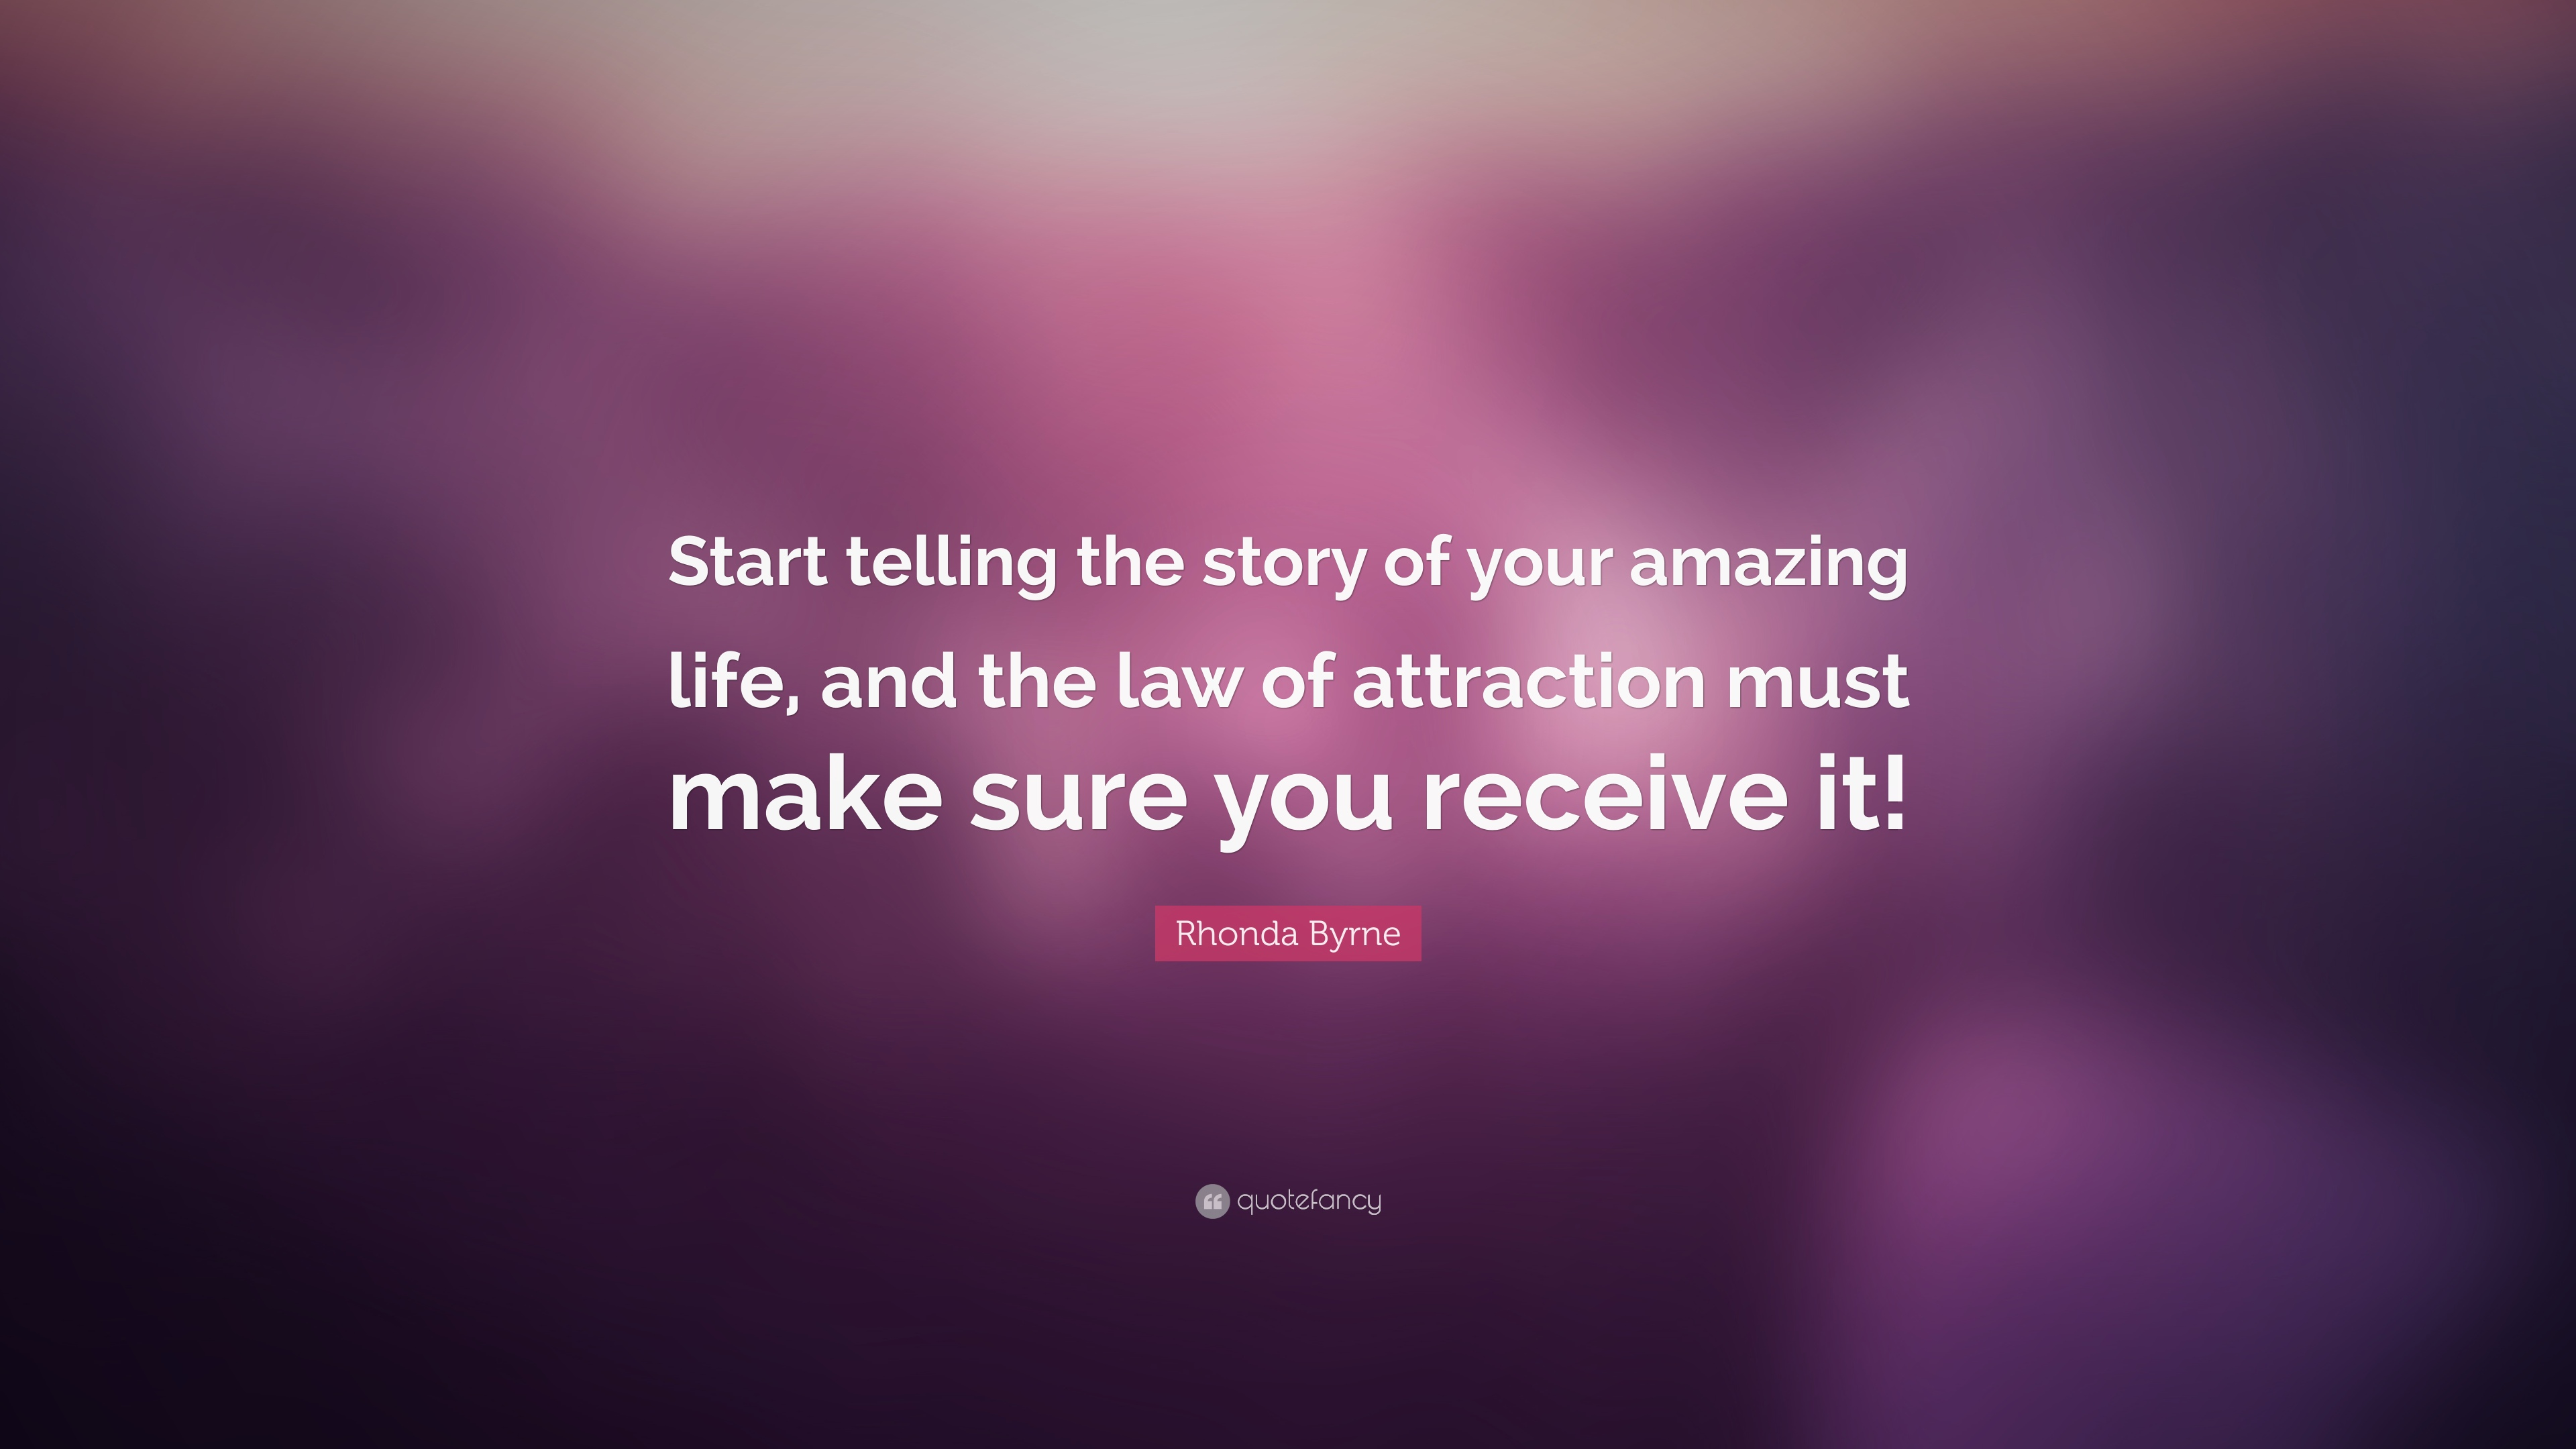 Law Of Attraction Quotes Prepossessing Law Of Attraction Quotes 40 Wallpapers  Quotefancy